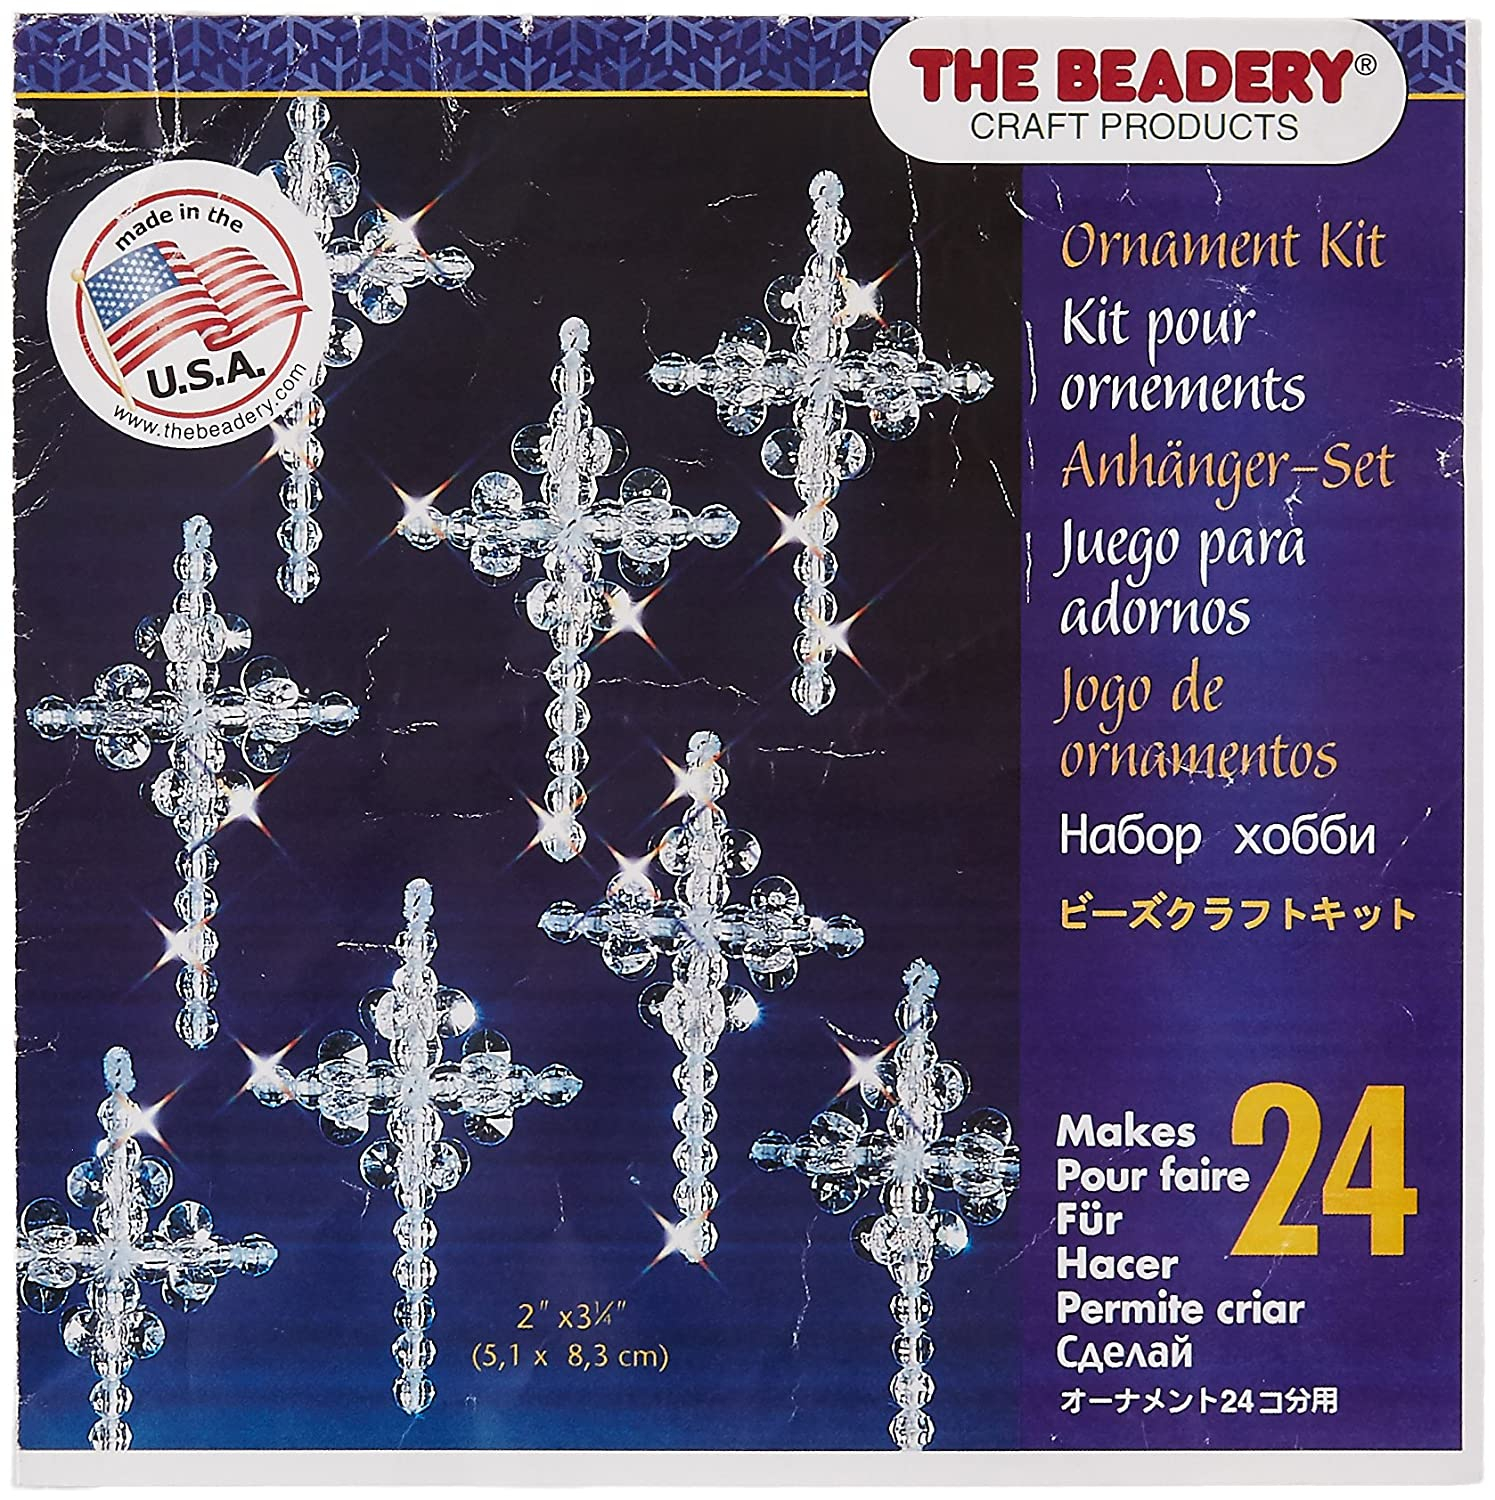 Beadery Holiday Beaded Ornament Kit, Crystal Crosses, 1.25-Inch, Makes 24 (BOK-5536) Darice BDR888998